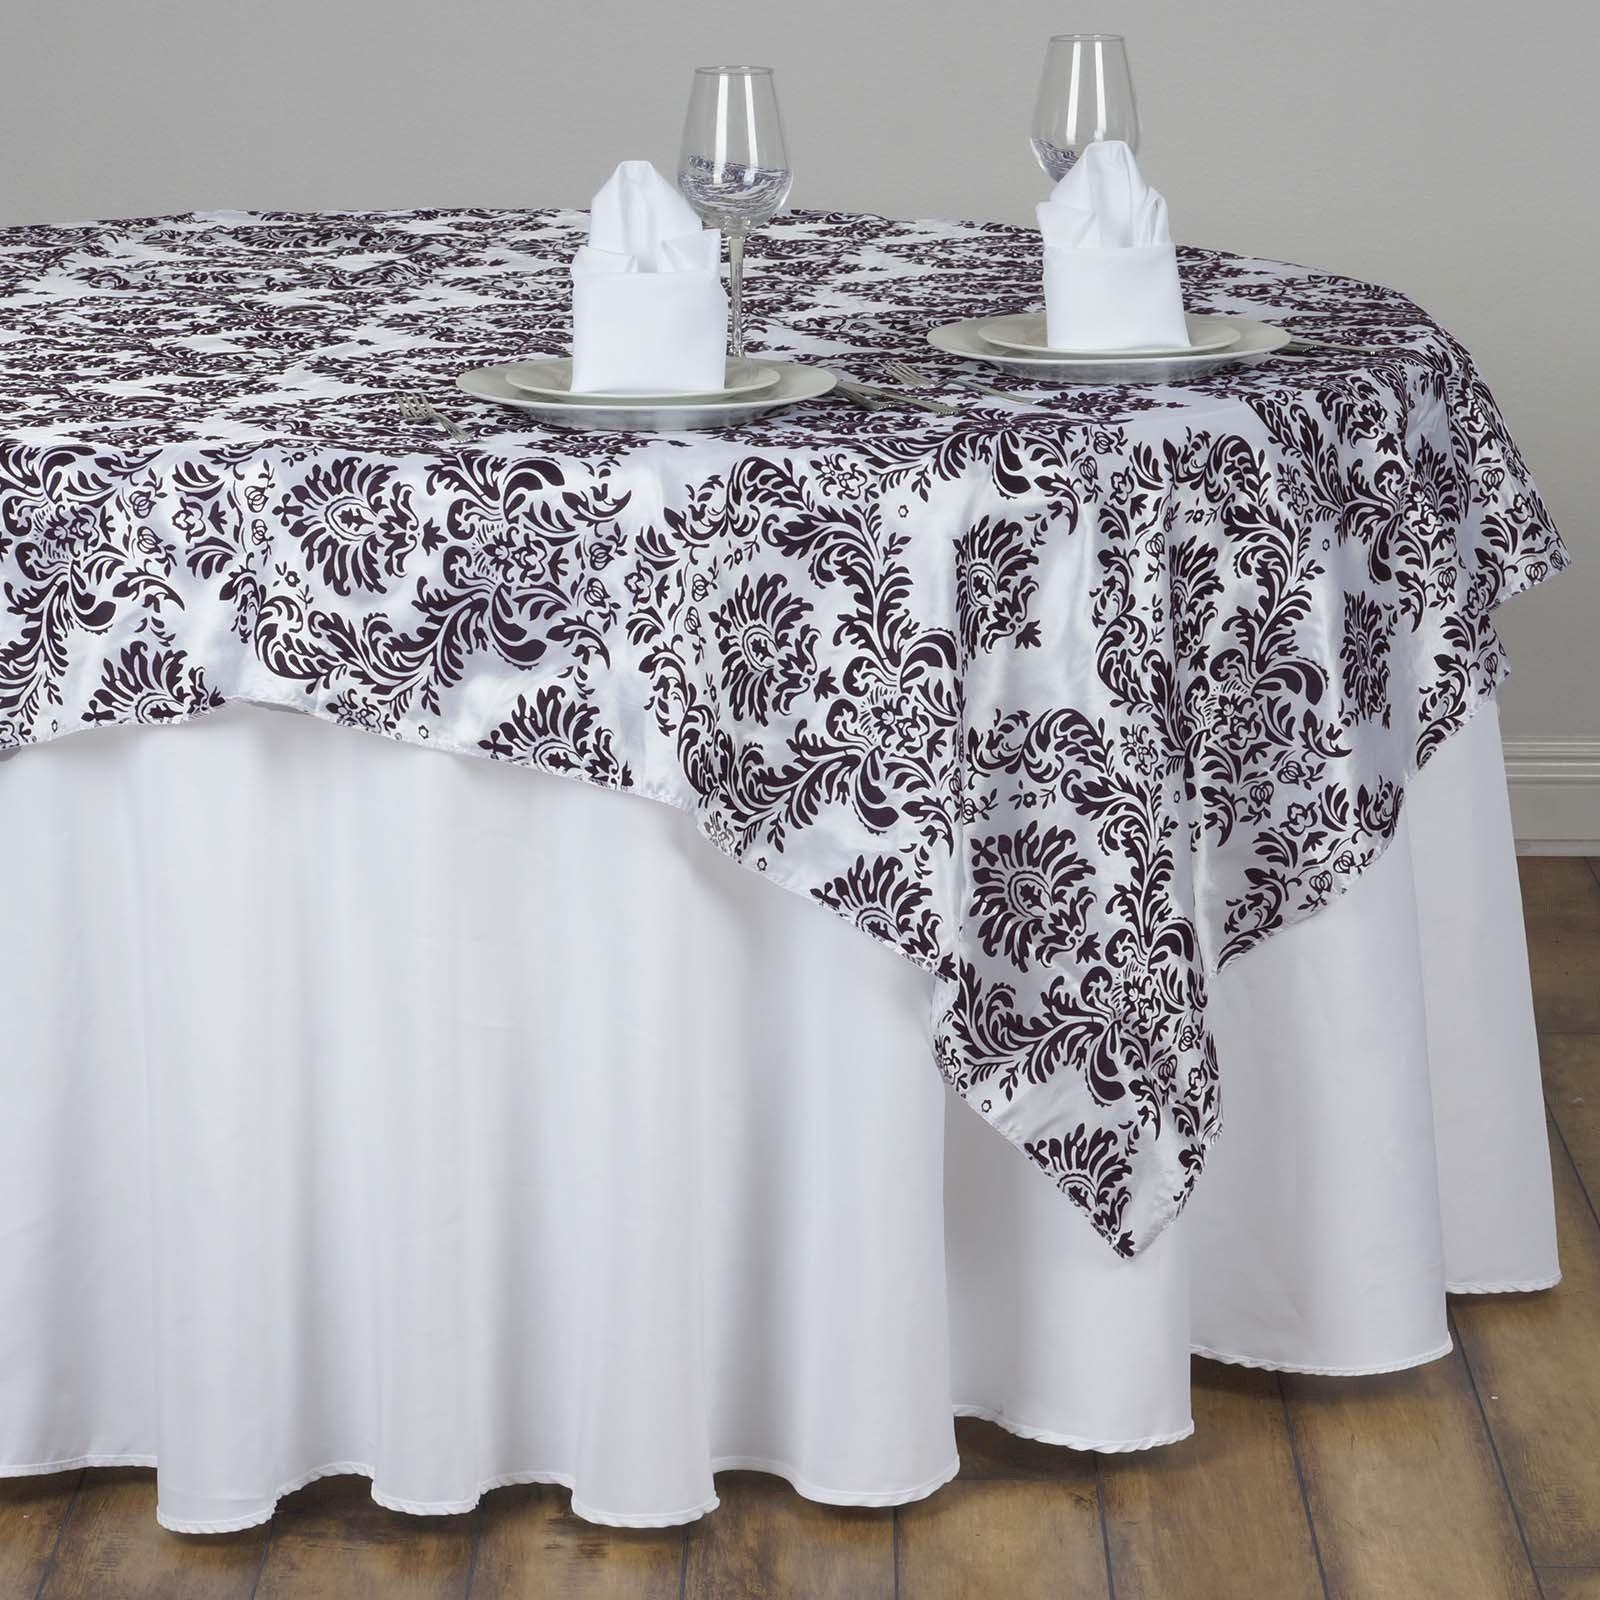 60 Overlay Flocking White Chocolate Tablecloths Factory